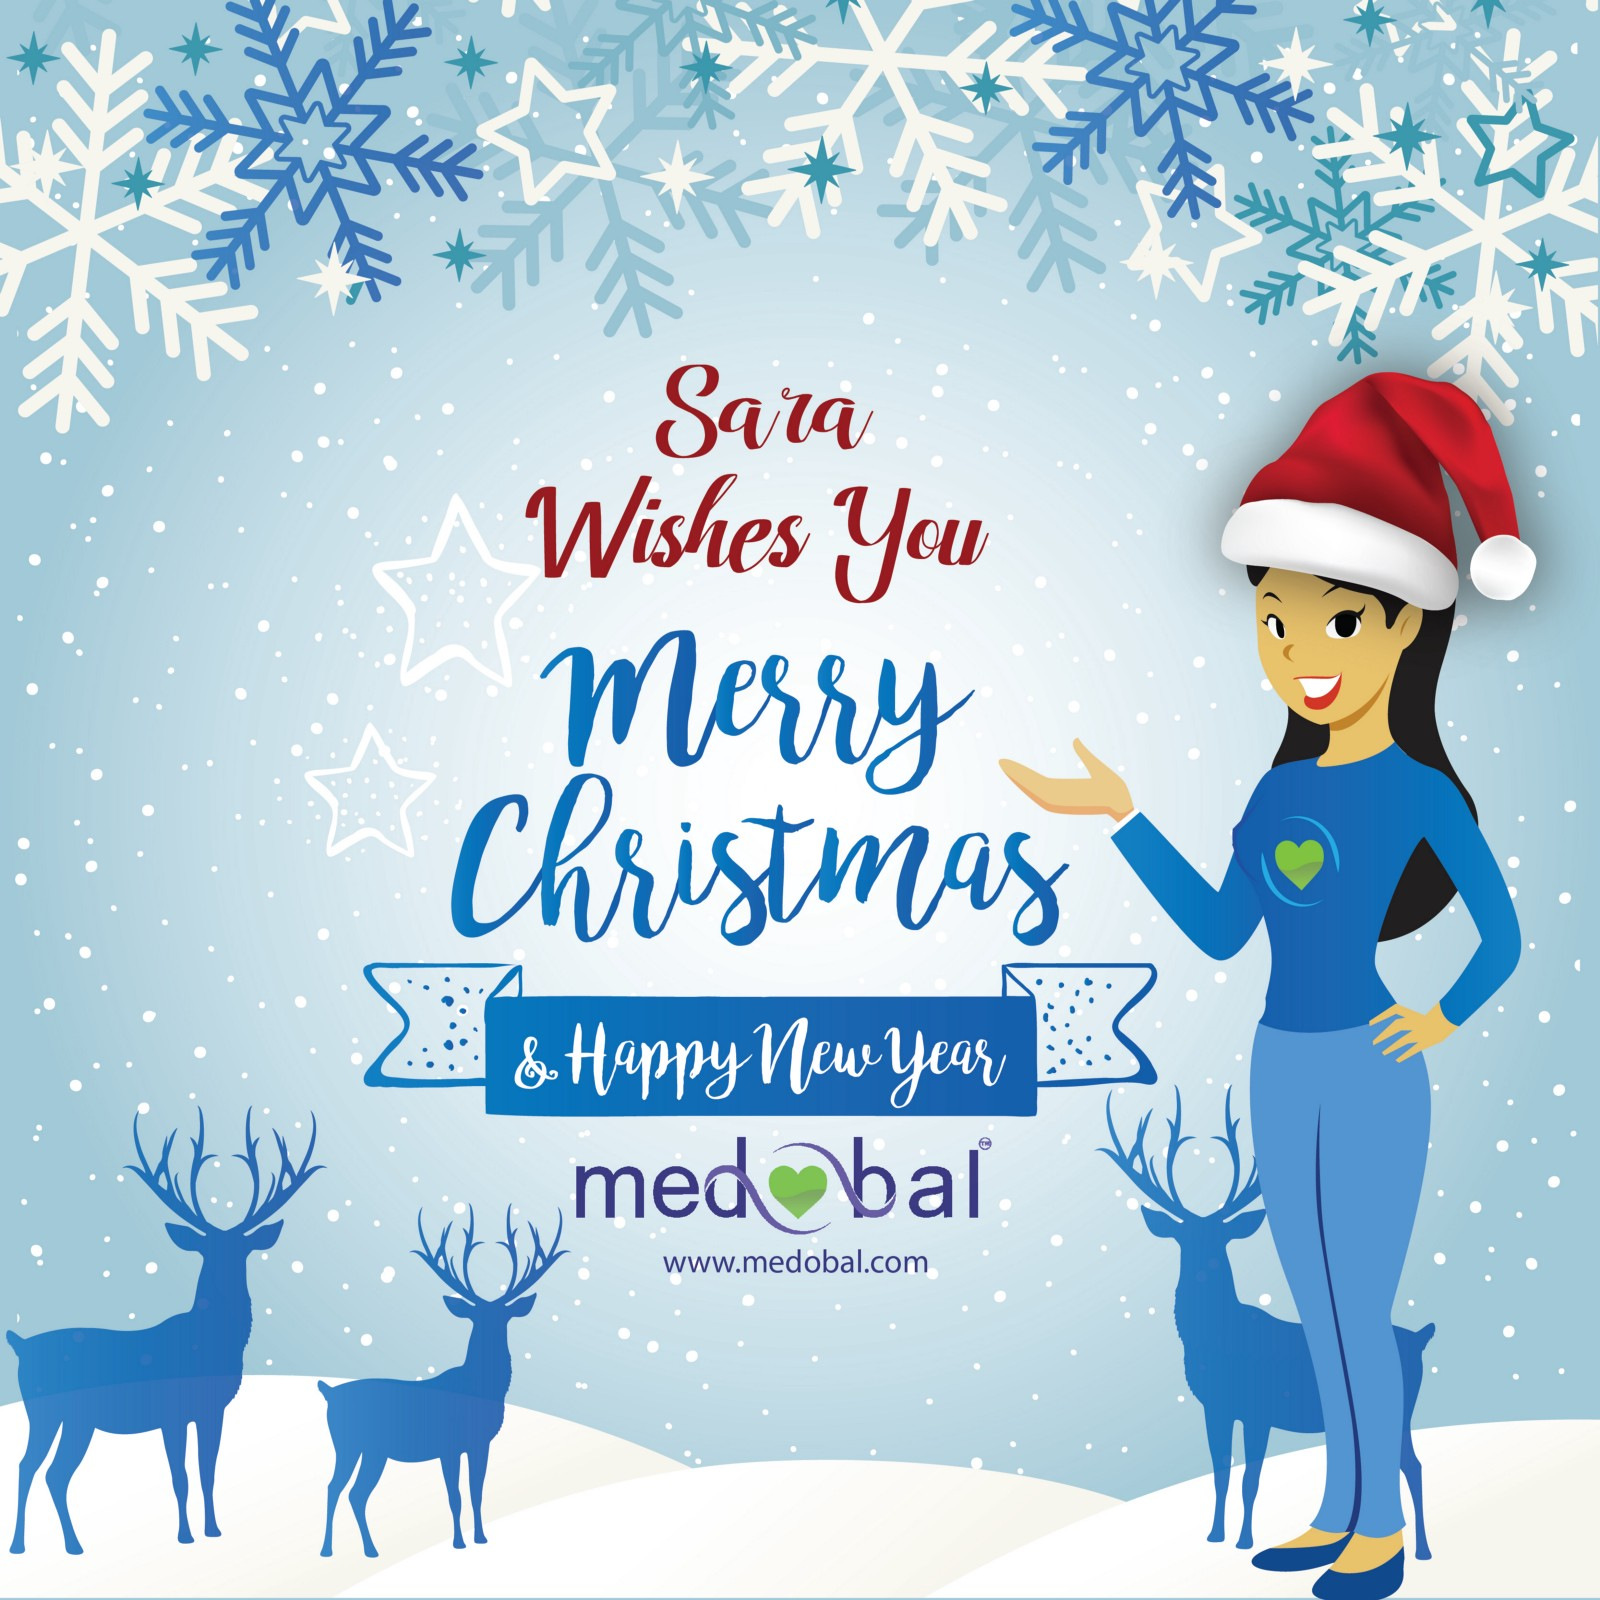 we wish you a happy and joyful christmas and a prosperous new year filled with health happiness and spectacular success team medobal